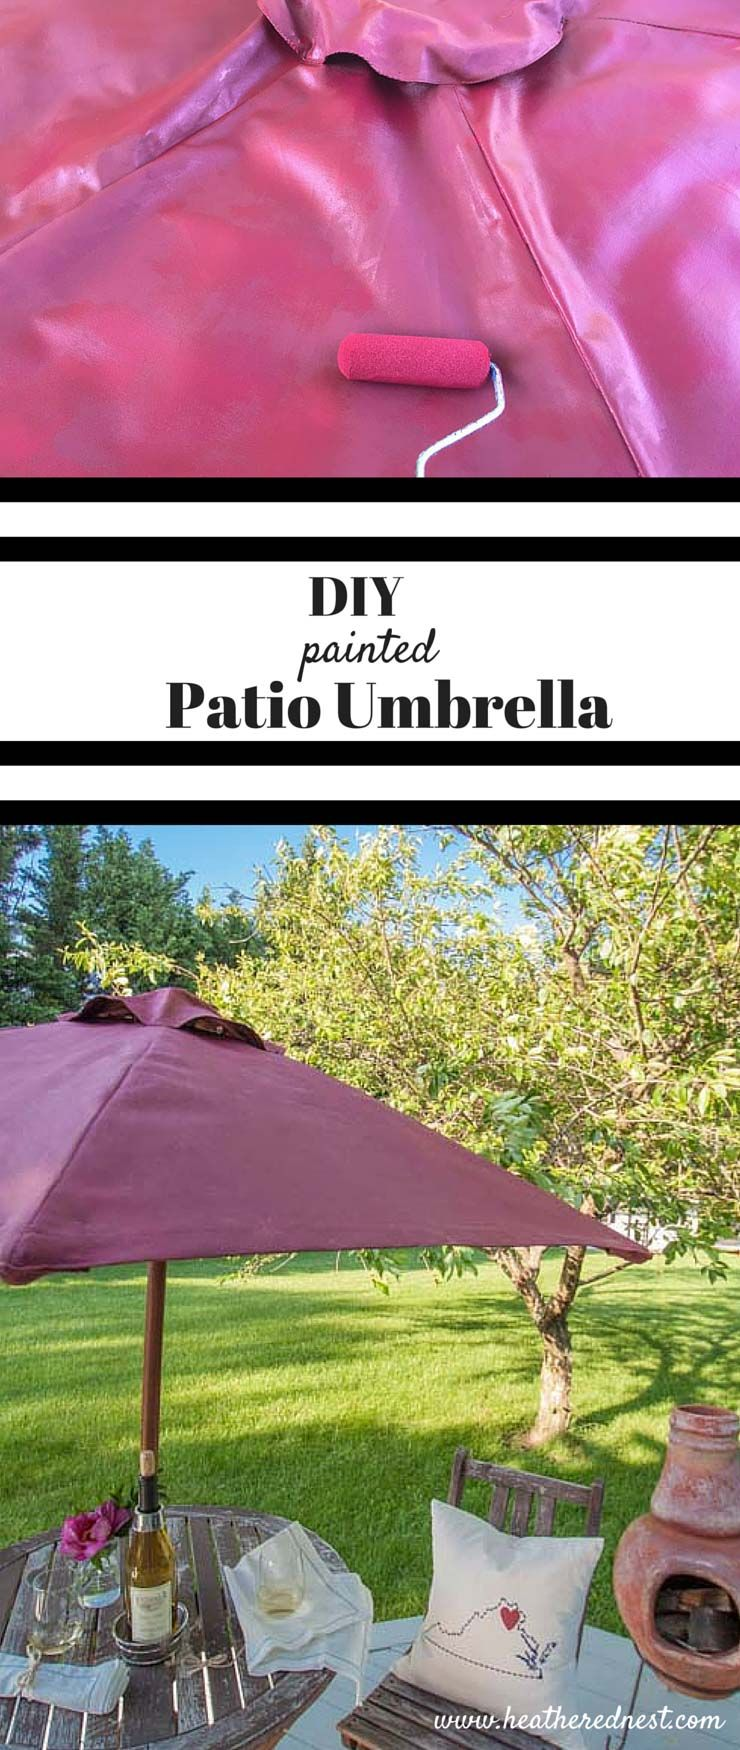 Never Would Have Thought To Try This Diy Umbrella Painting Painted Patio From Www Heatherednest